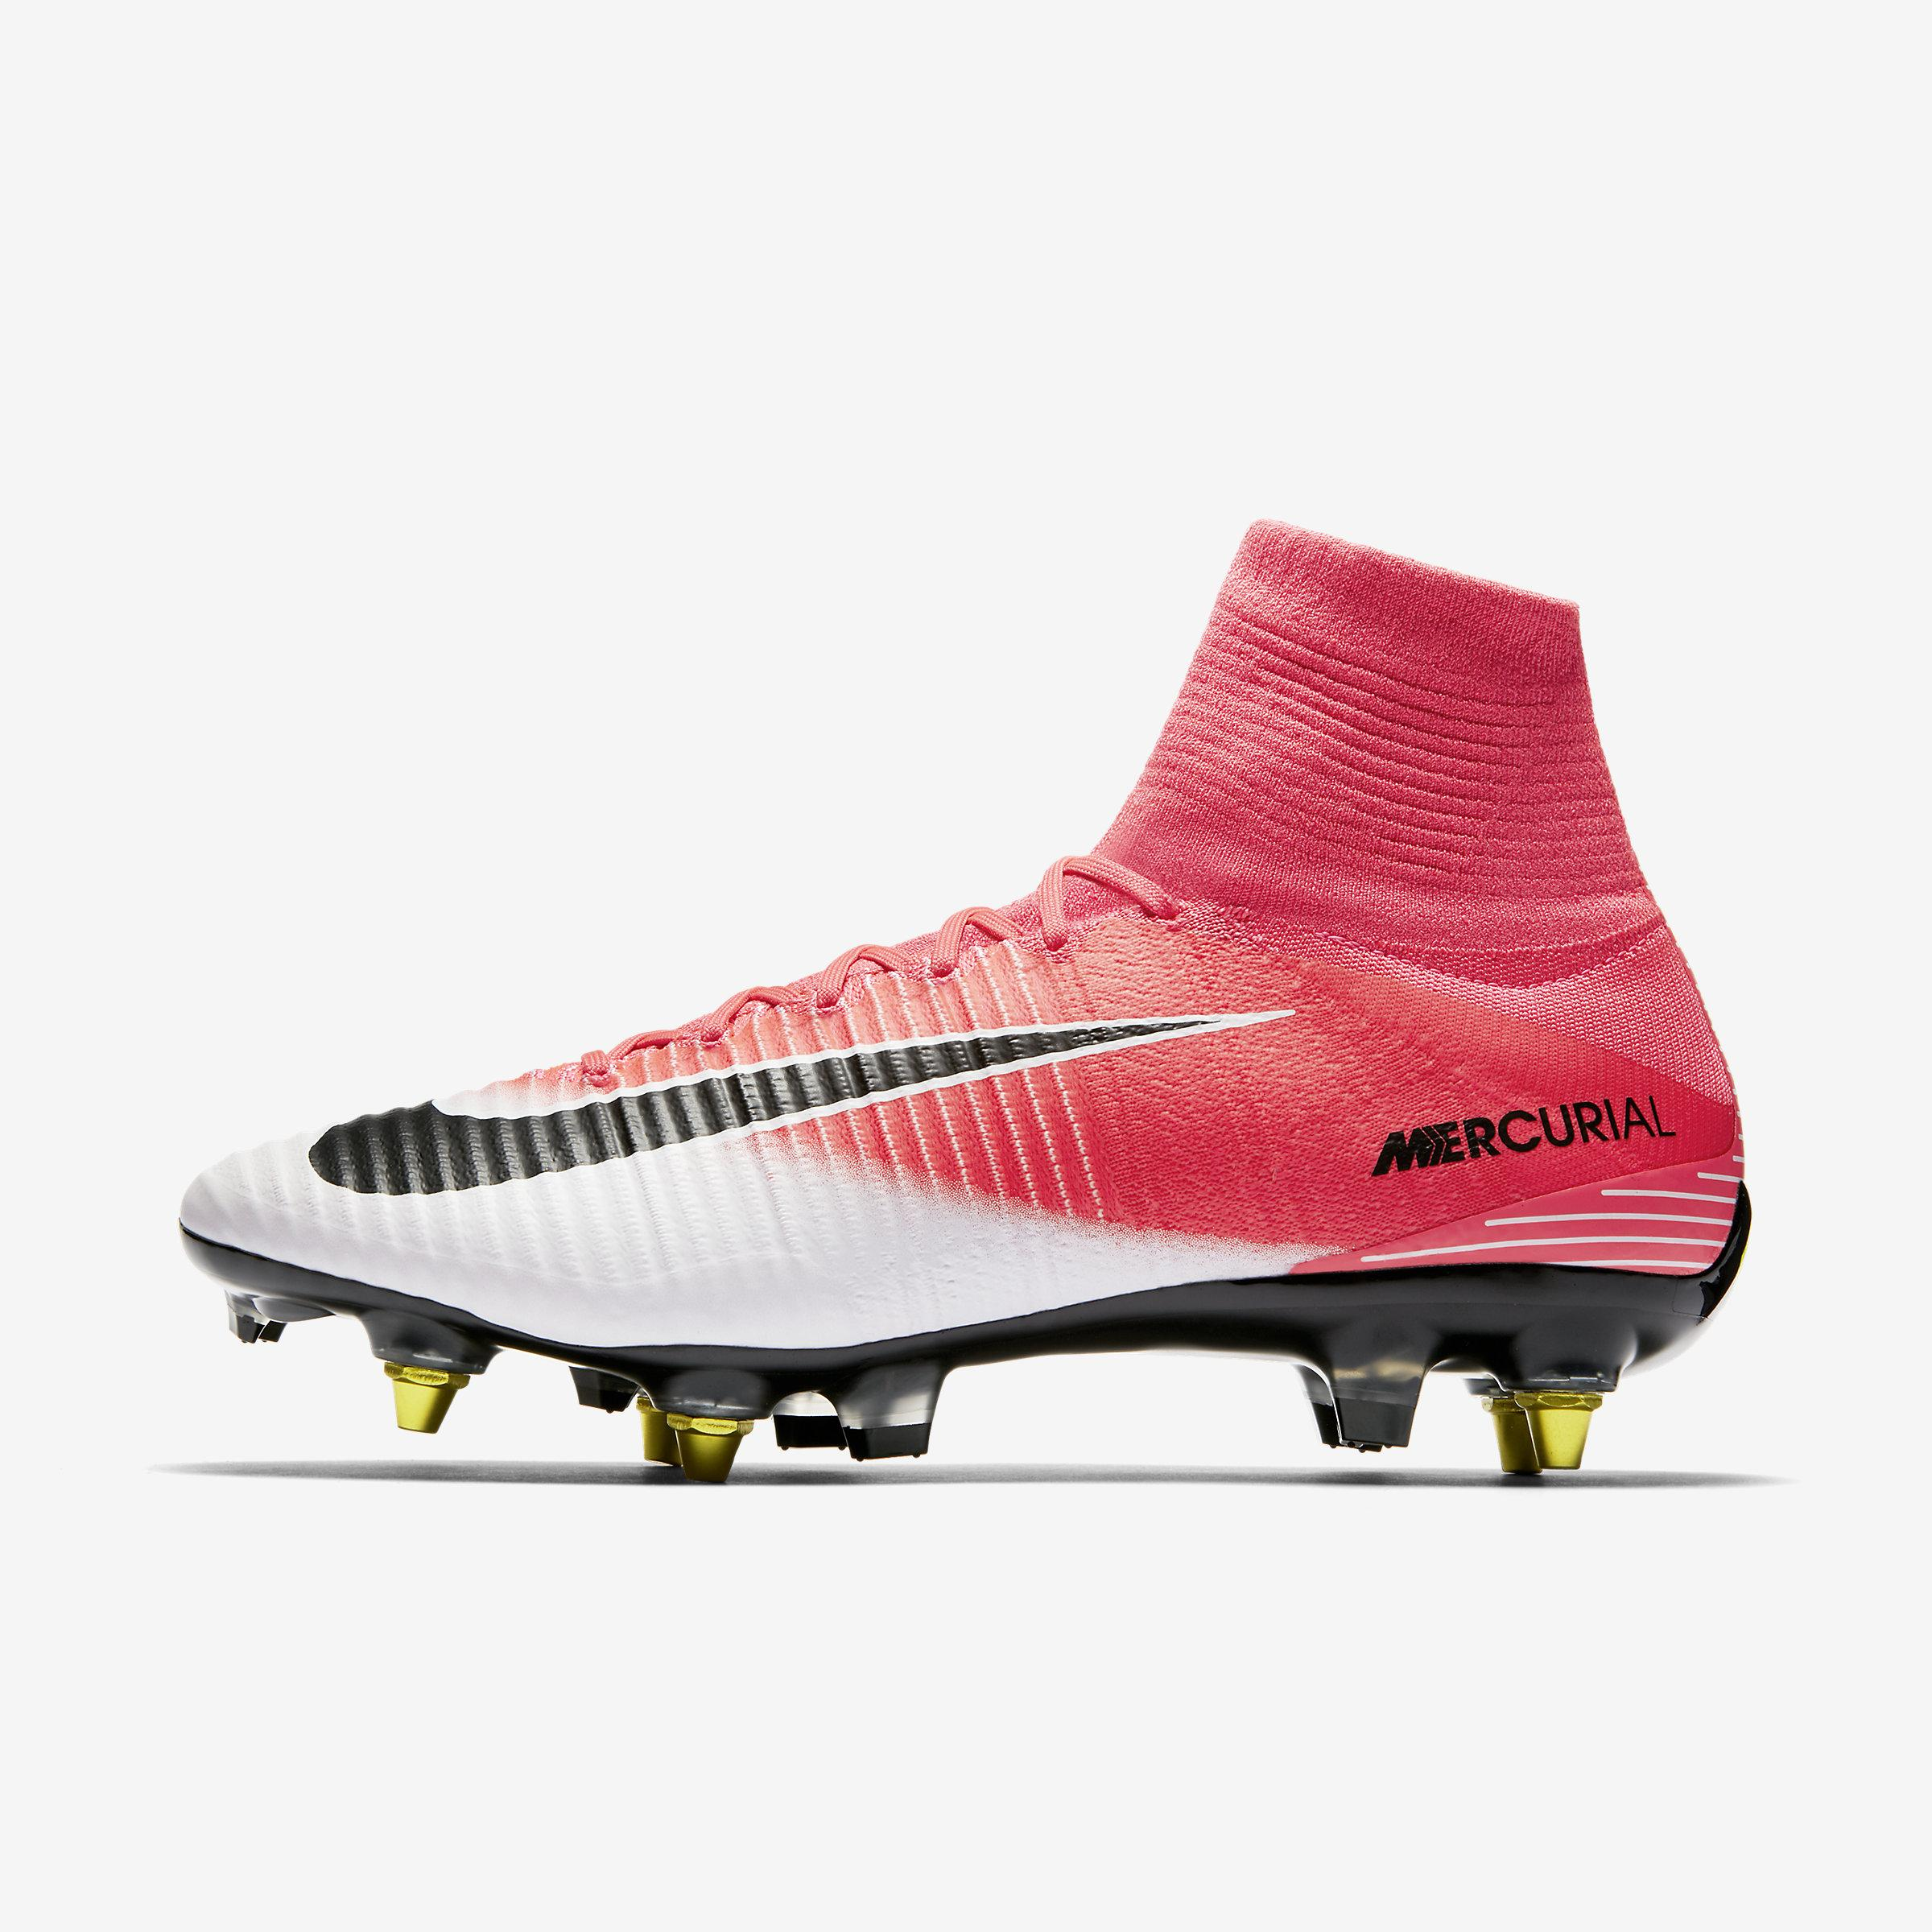 25b3a85cb Nike Mercurial Superfly V Dynamic Fit Sg-pro Anti-clog in Pink for ...